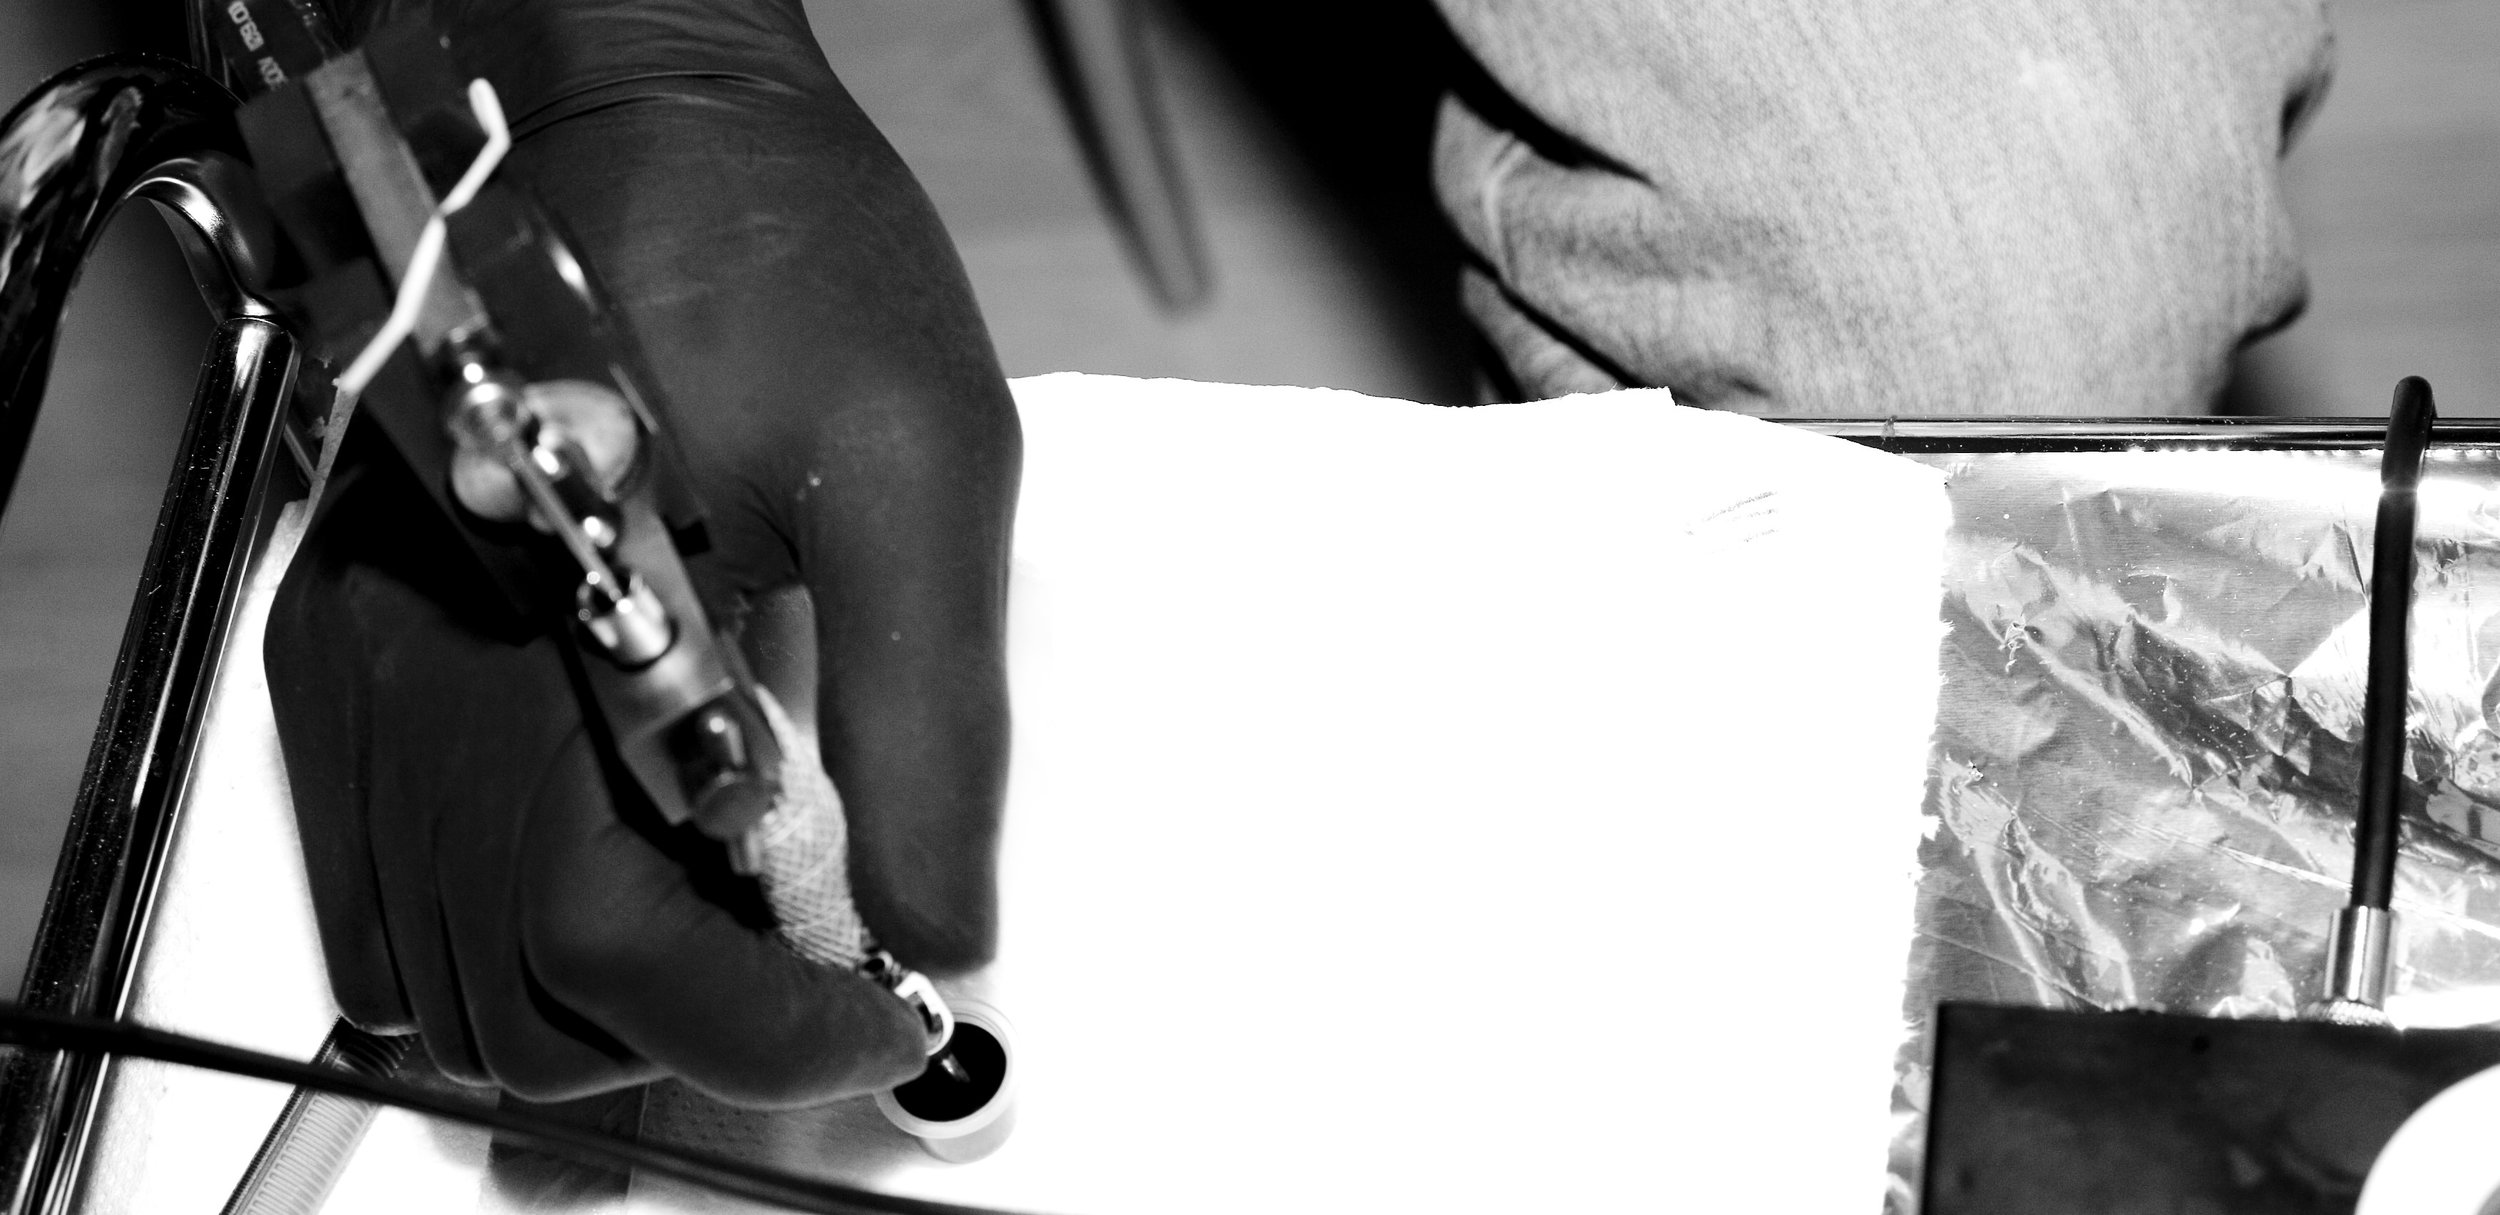 tattooing needle and ink